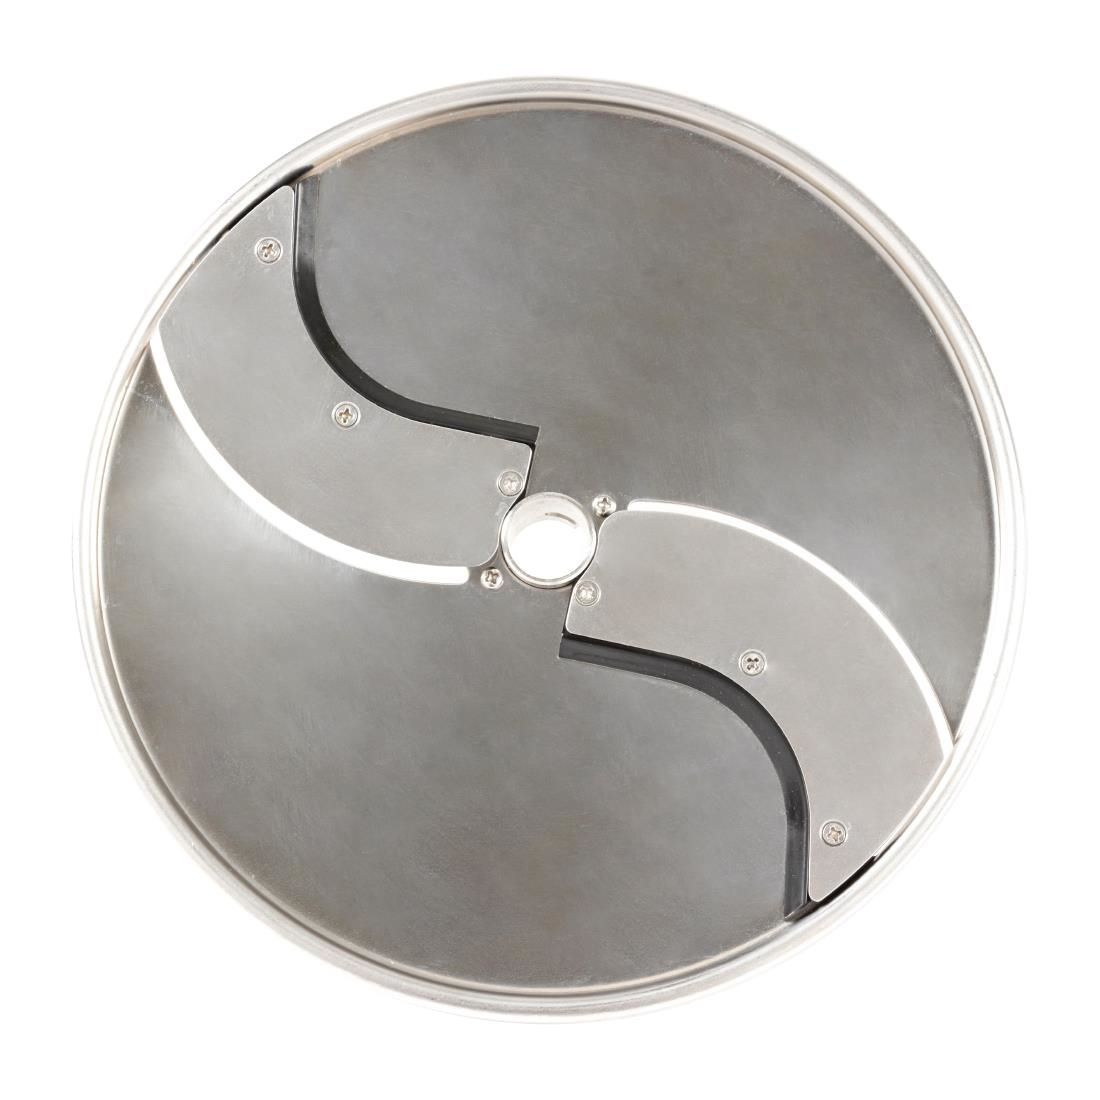 Image of Dynamic 1.5mm Slicing Disc CL1015